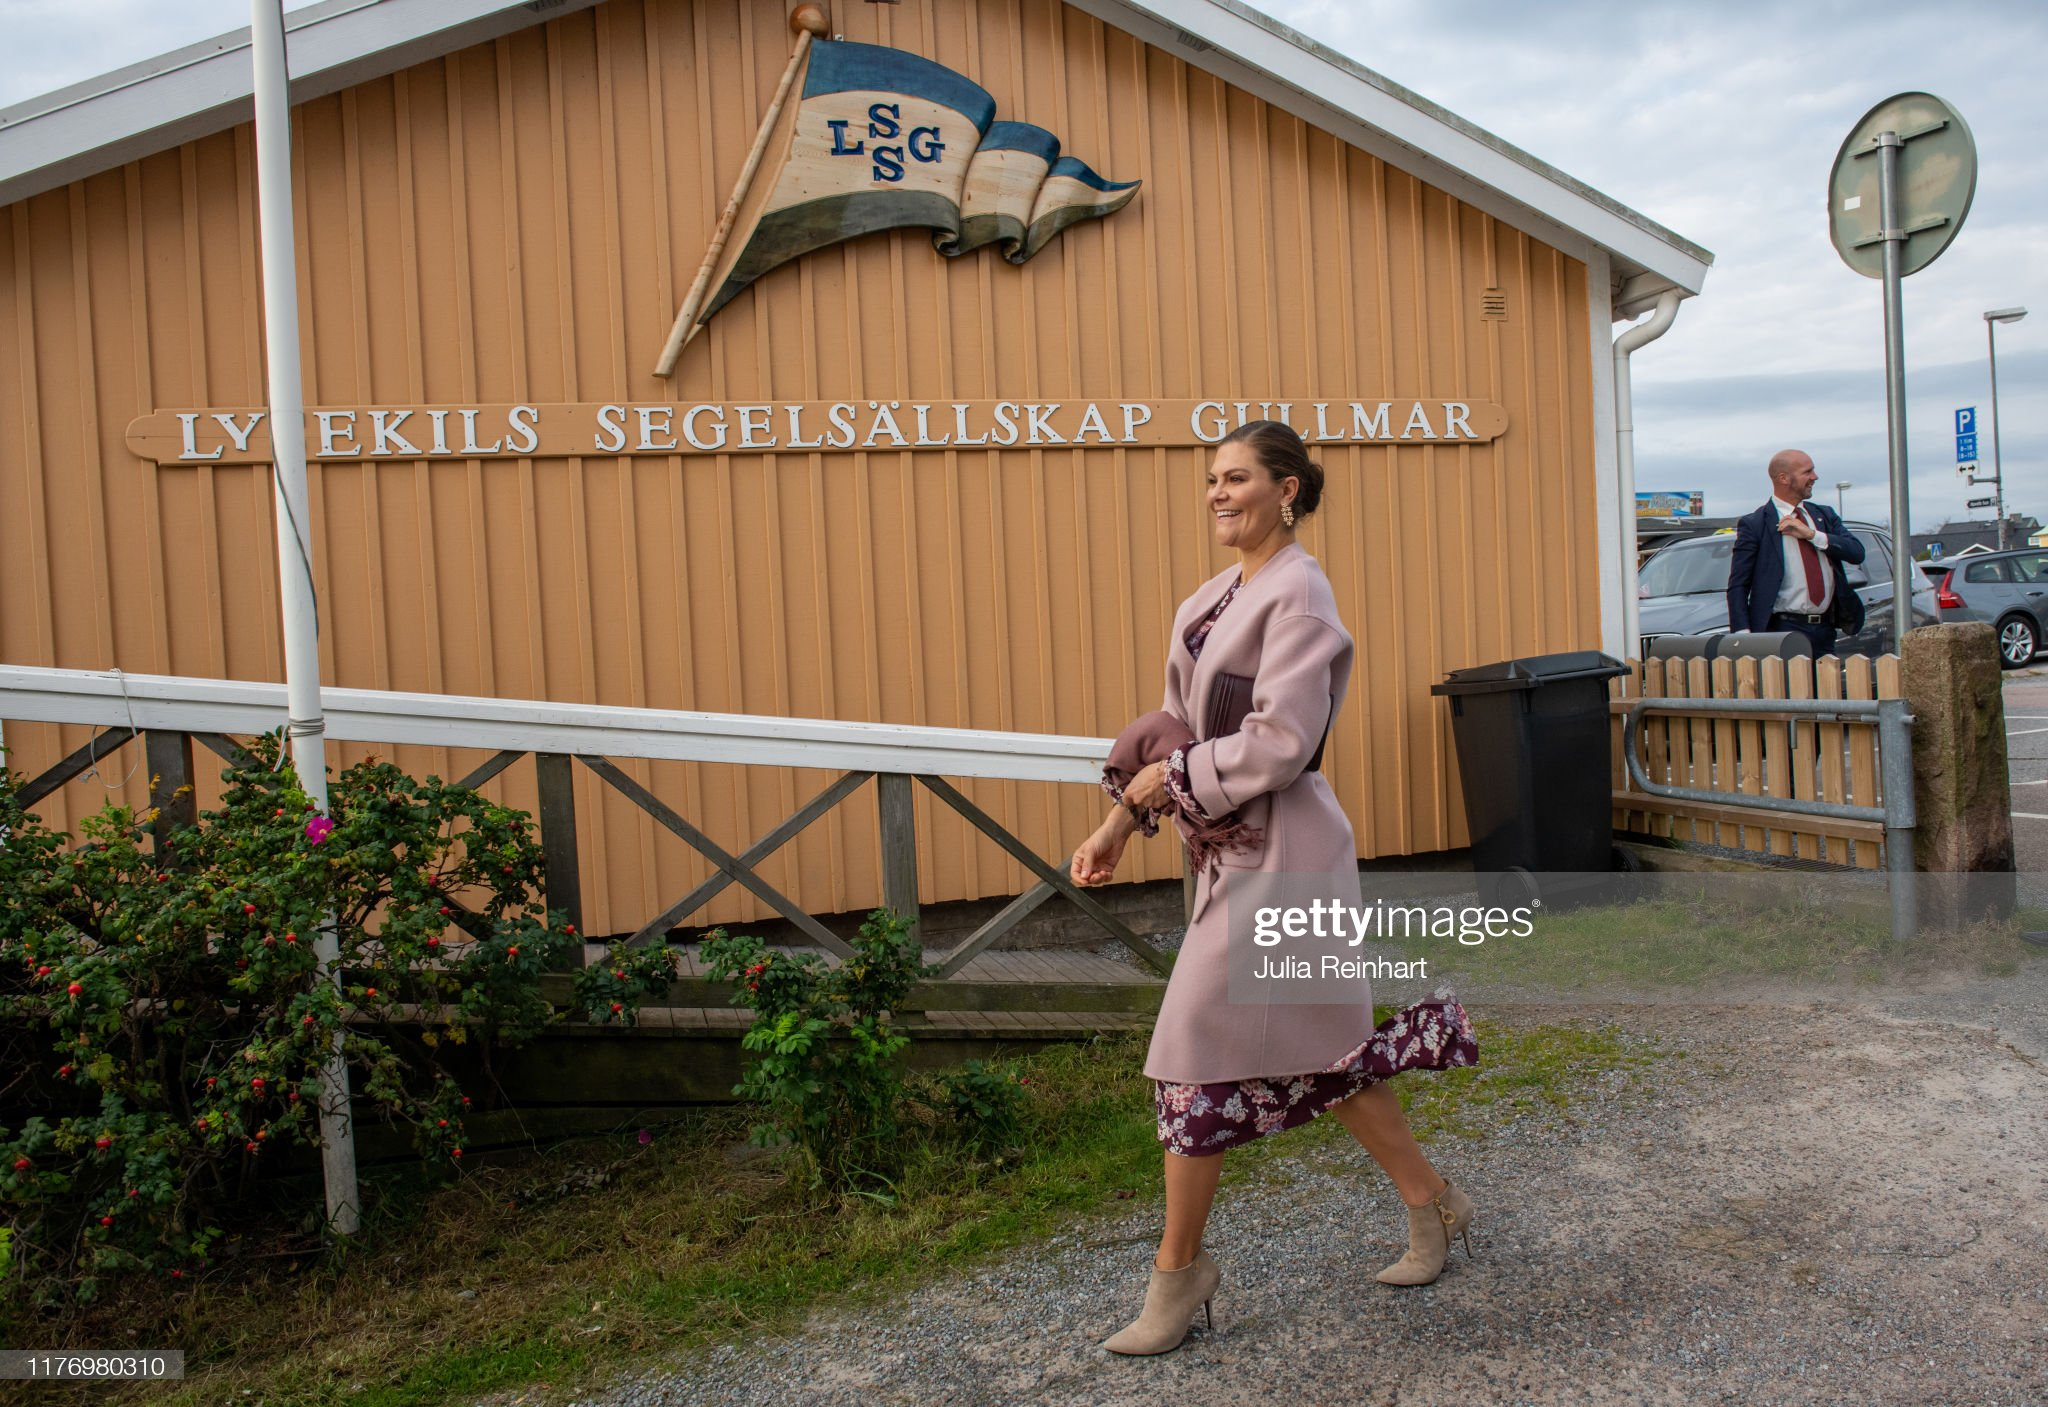 crown-princess-victoria-arrives-for-her-visit-to-the-sea-fish-on-25-picture-id1176980310